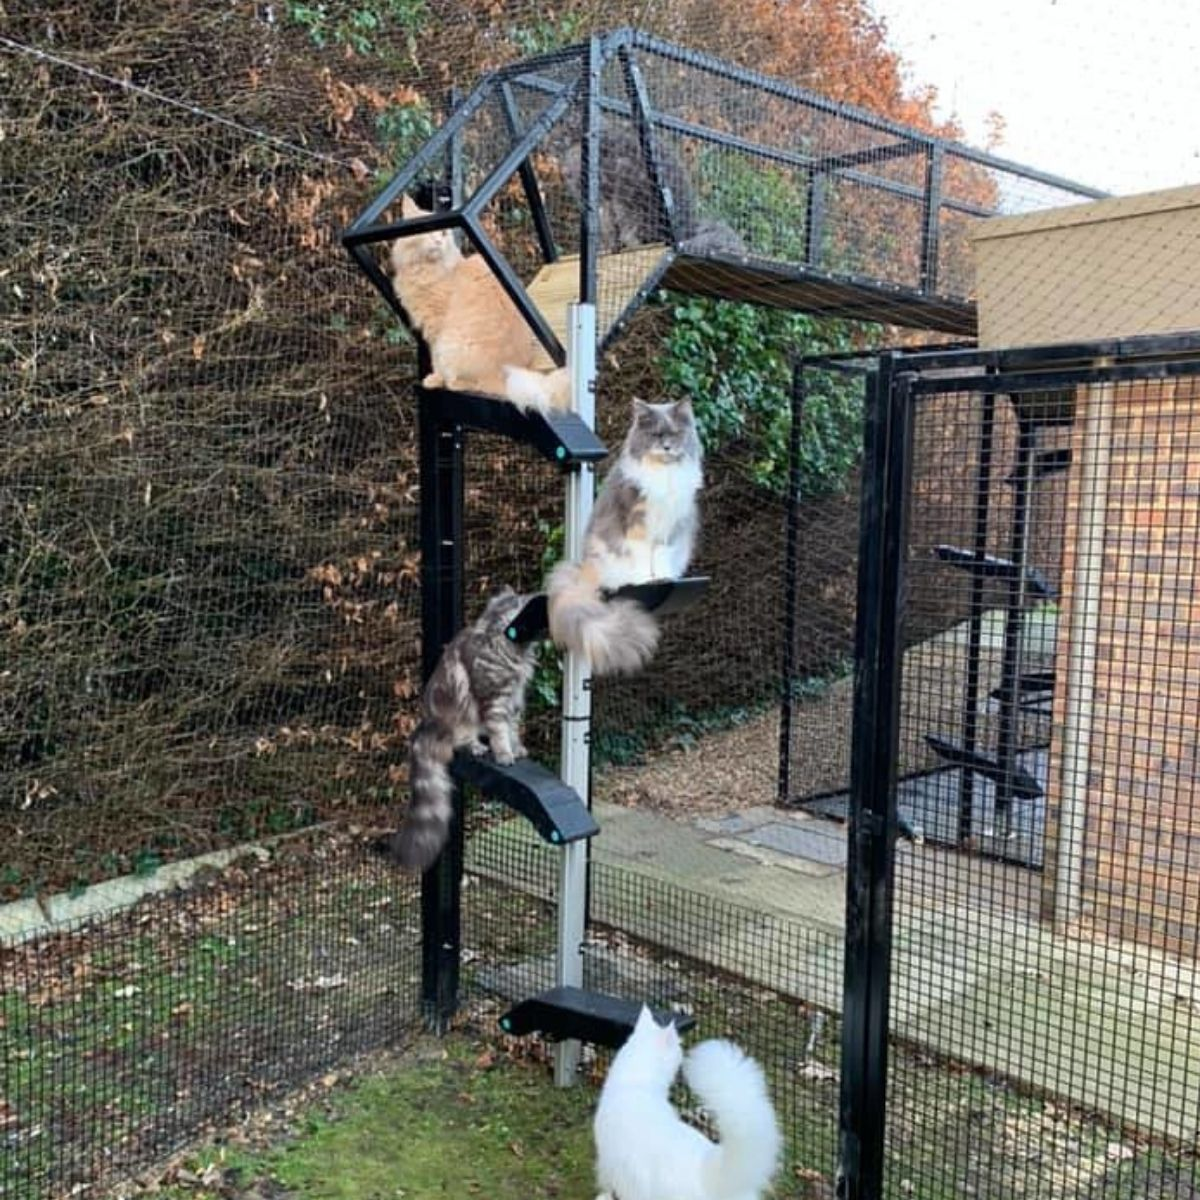 Cat Shelves leading to Catio Tunnels